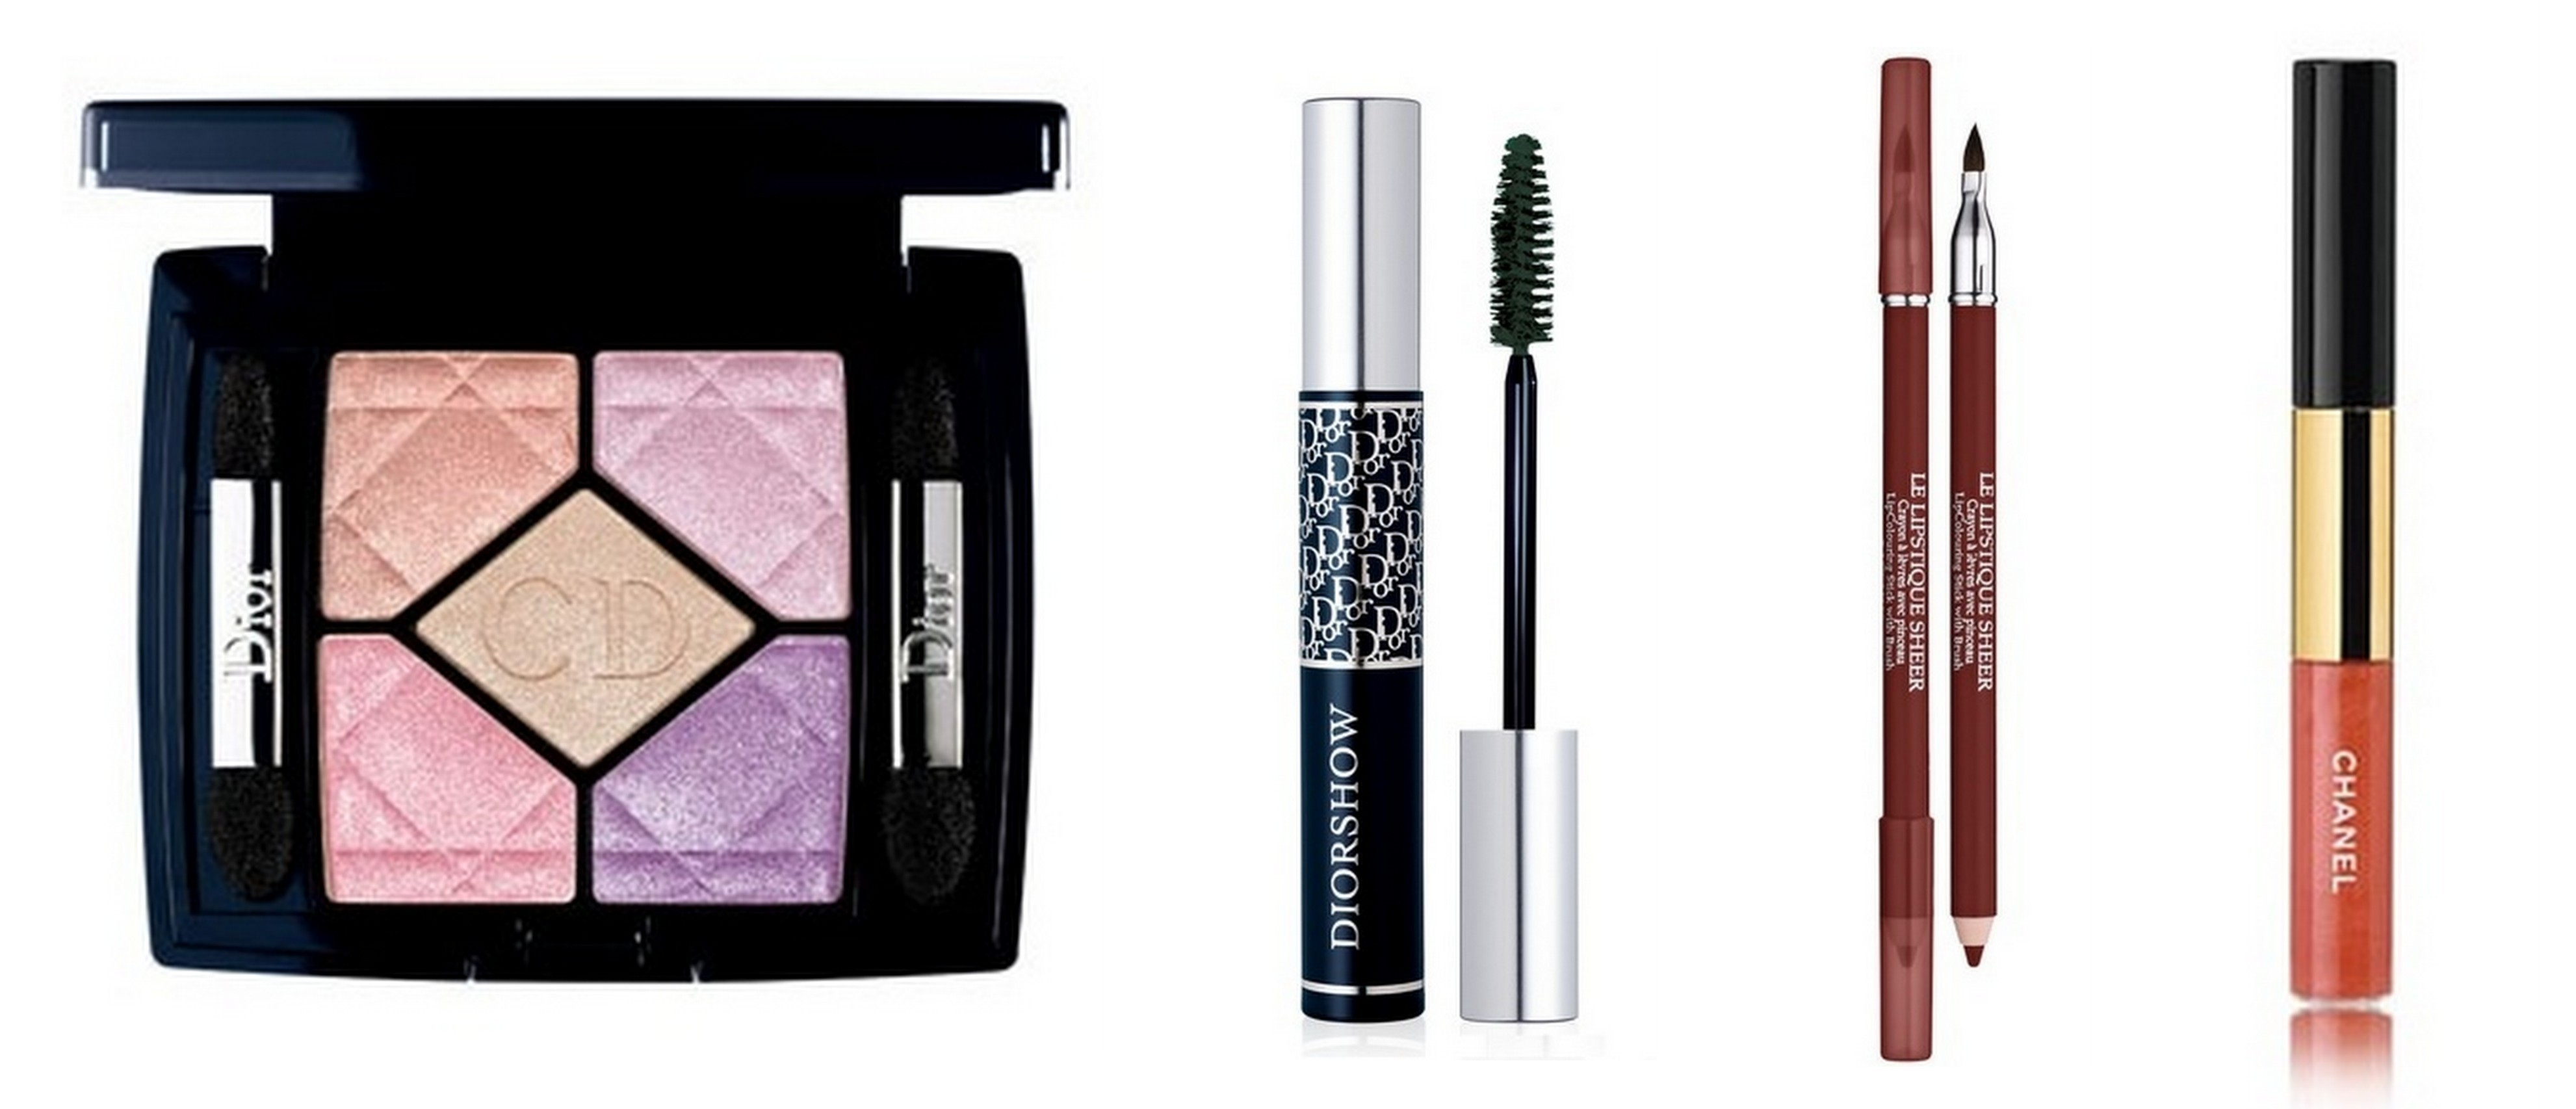 Favorite Products by Julia McCurley: Dior 5-Coulour Eyeshadow in Petal Shine, Dior Diorshow mascara, Lancome Le Lipstique, Chanel Rouge Double Intensite Ultra Wear Lip Color